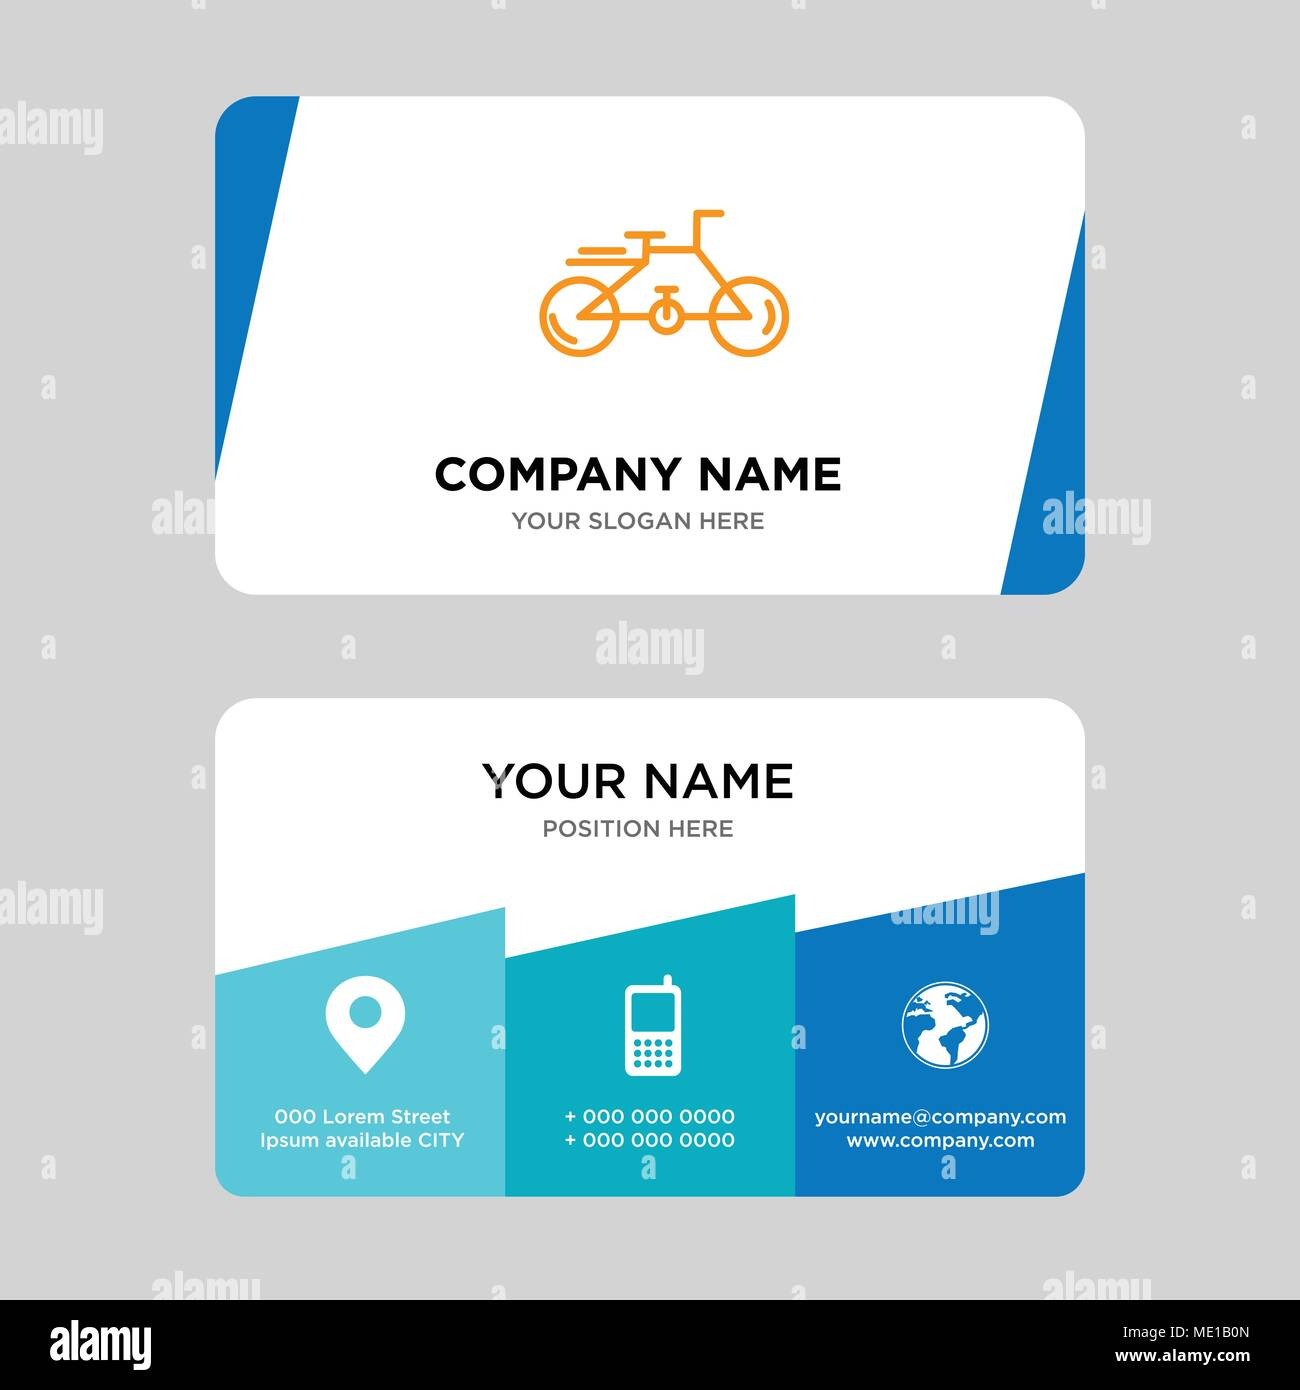 Bike business card design template, Visiting for your company ...